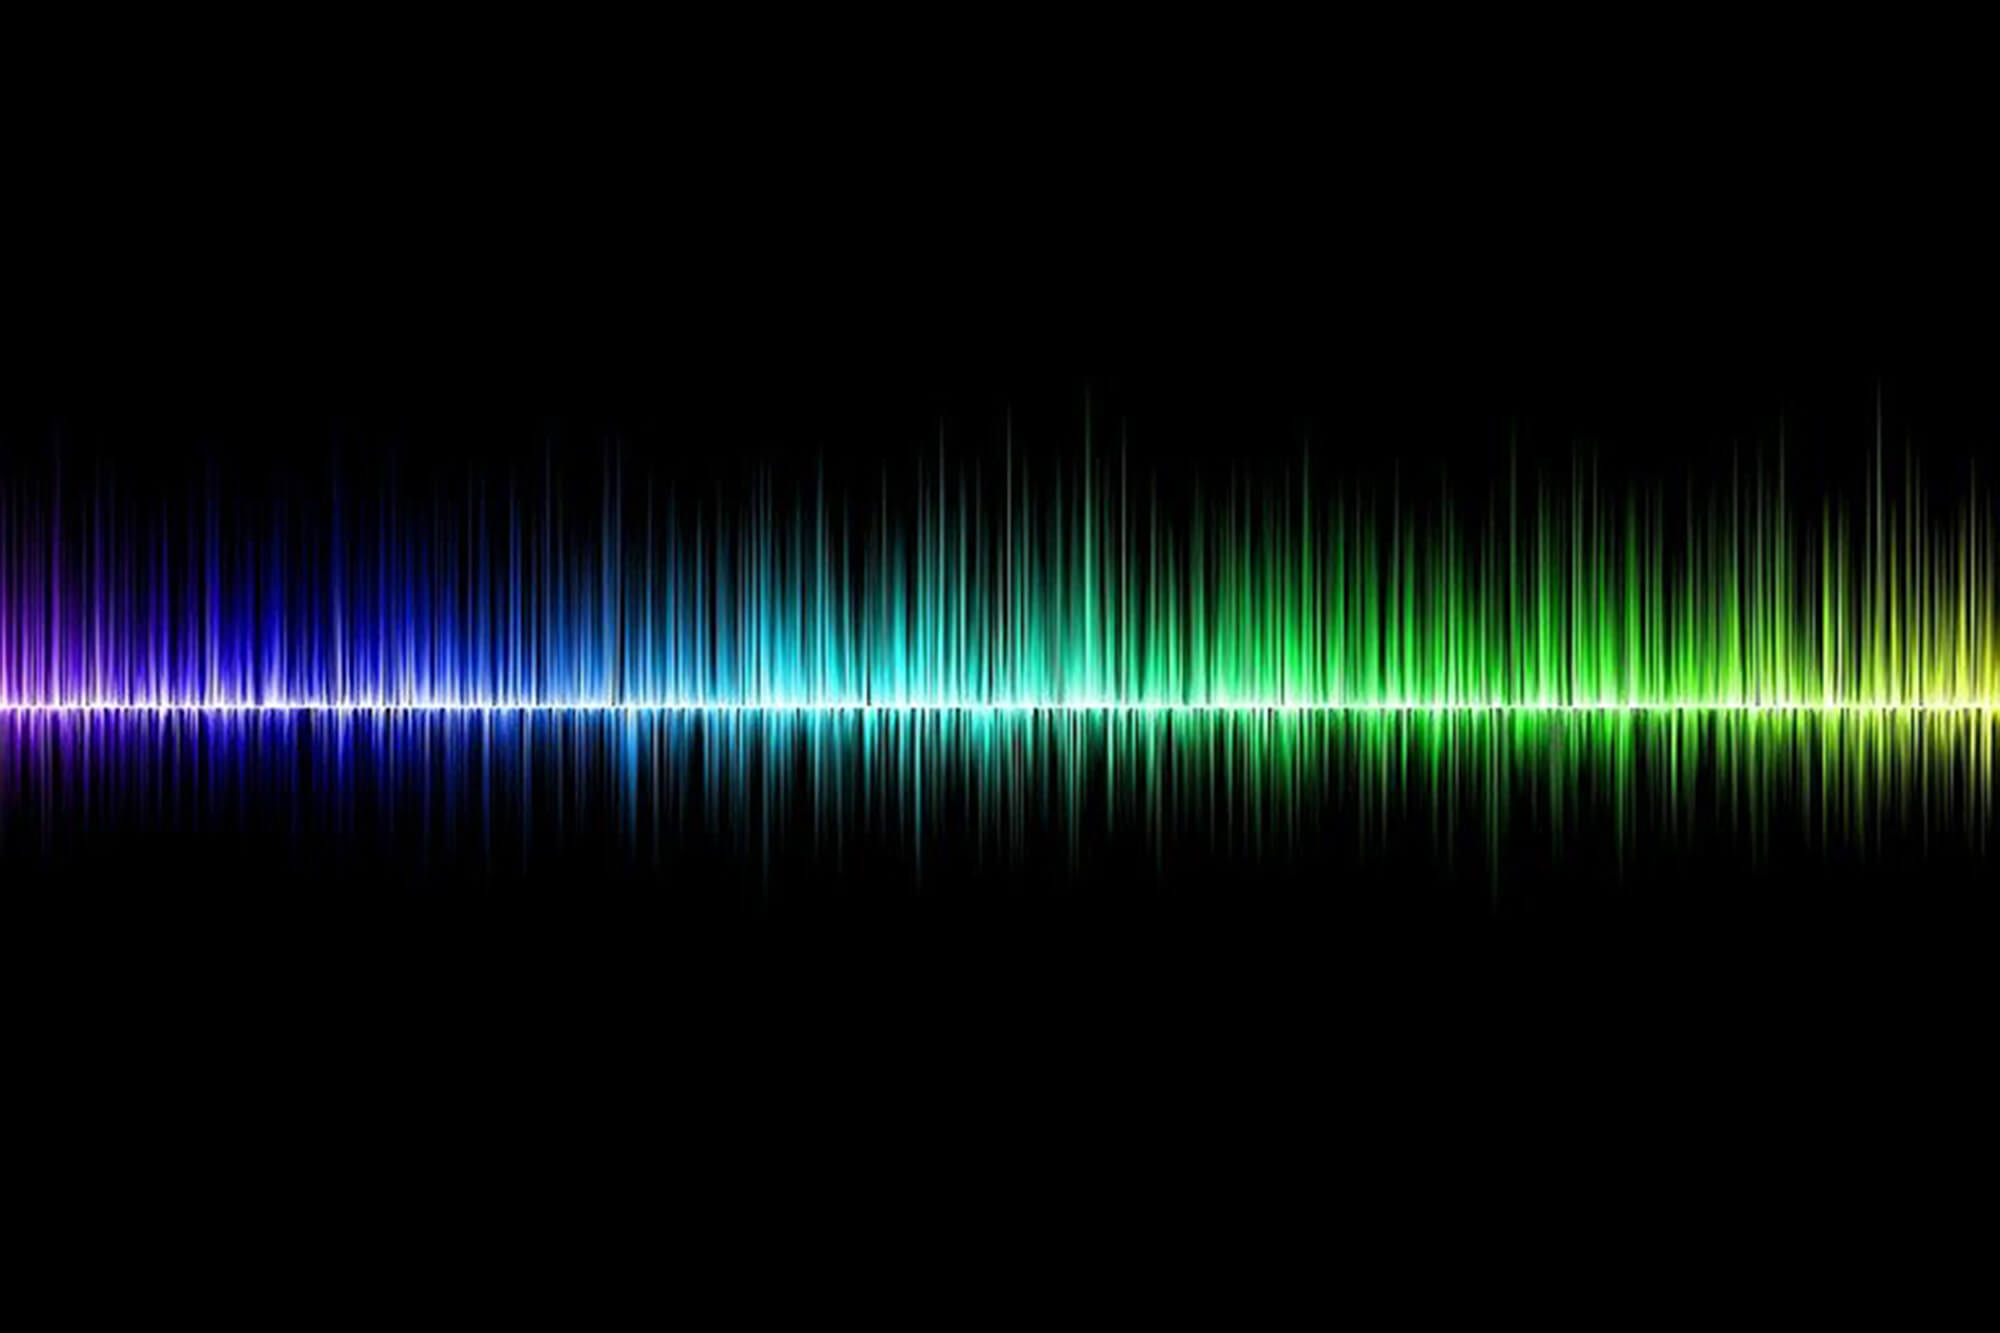 multicoloured sound waves on a black background